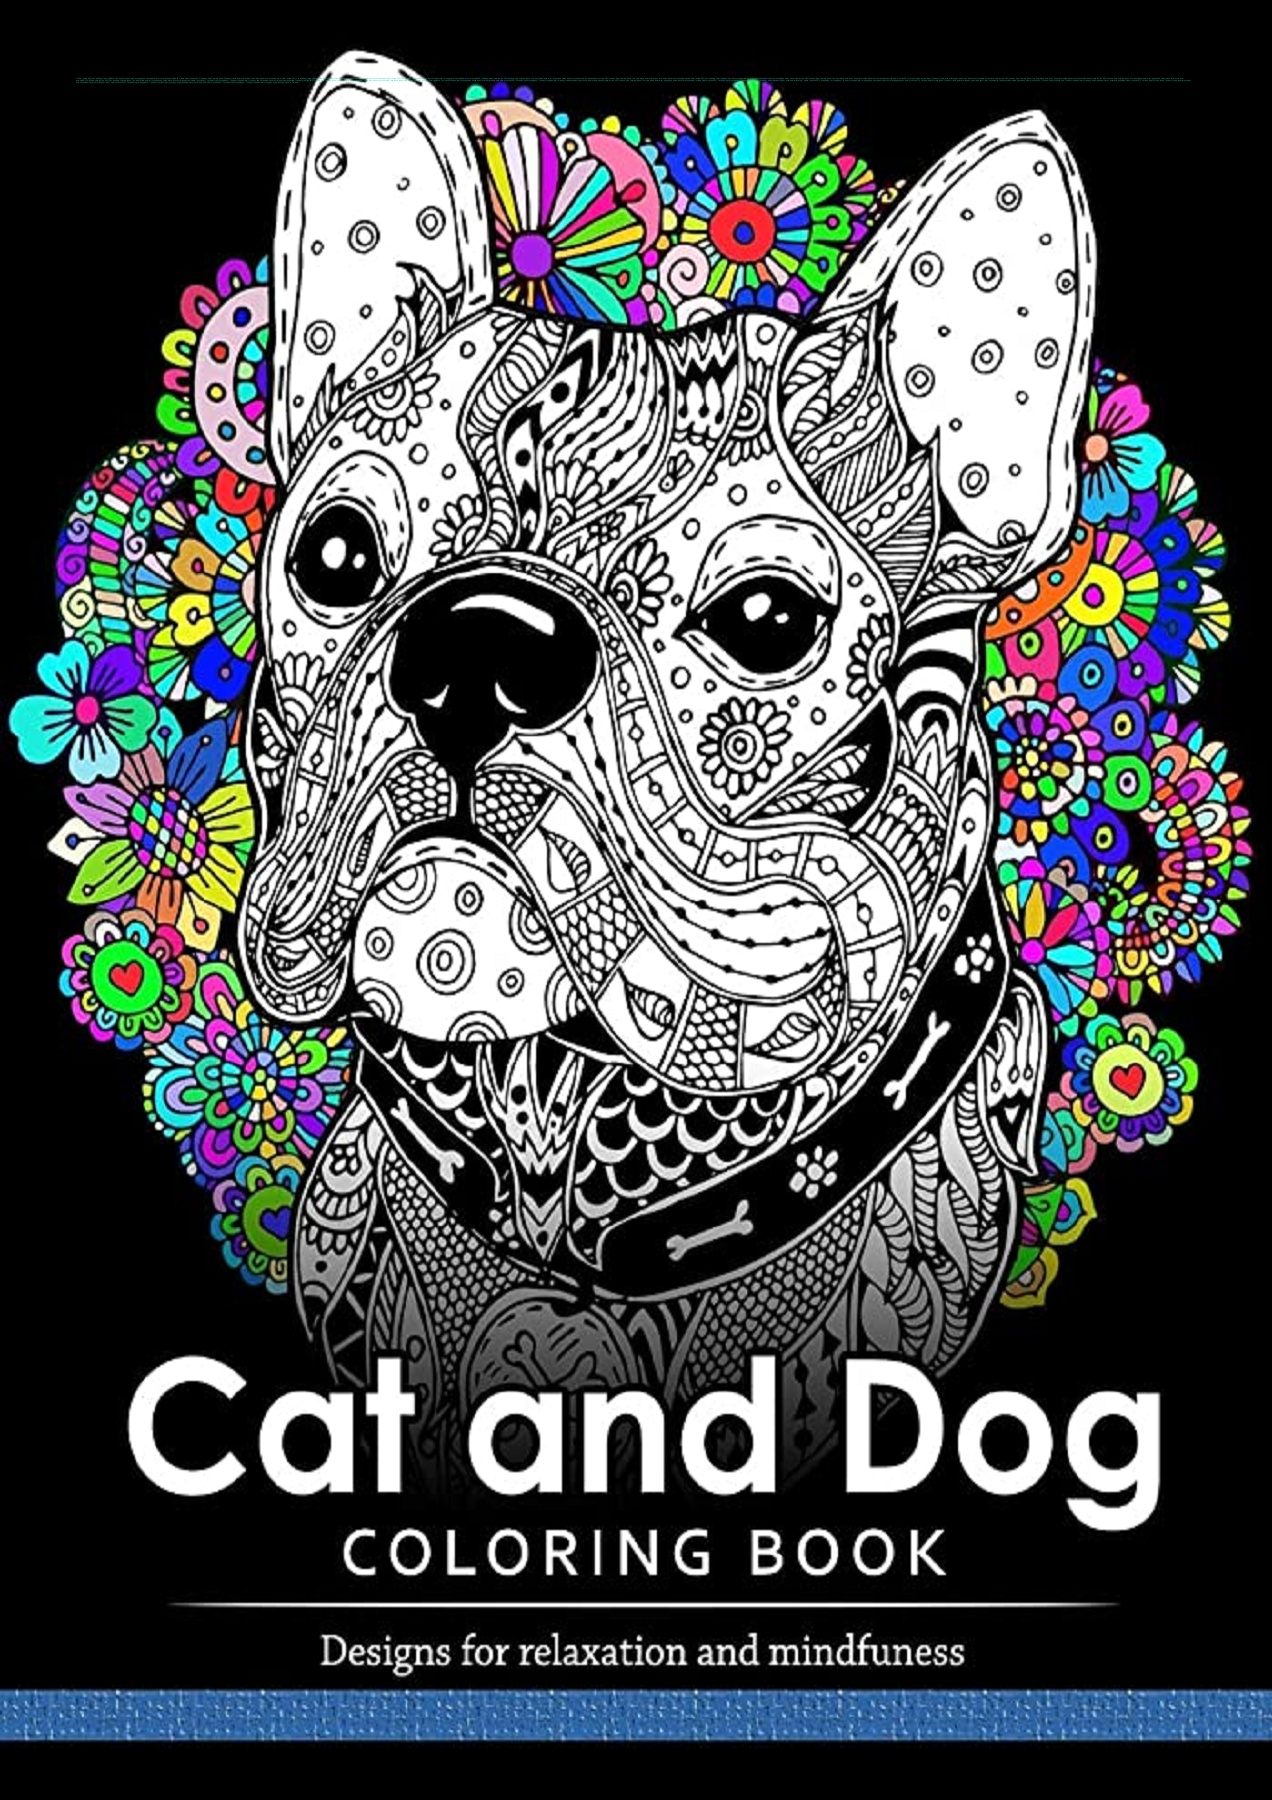 Kindle Online Pdf Cat And Dog Coloring Book The Best Friend Animal For Puppy And Kitten Adult Lover Unlimited